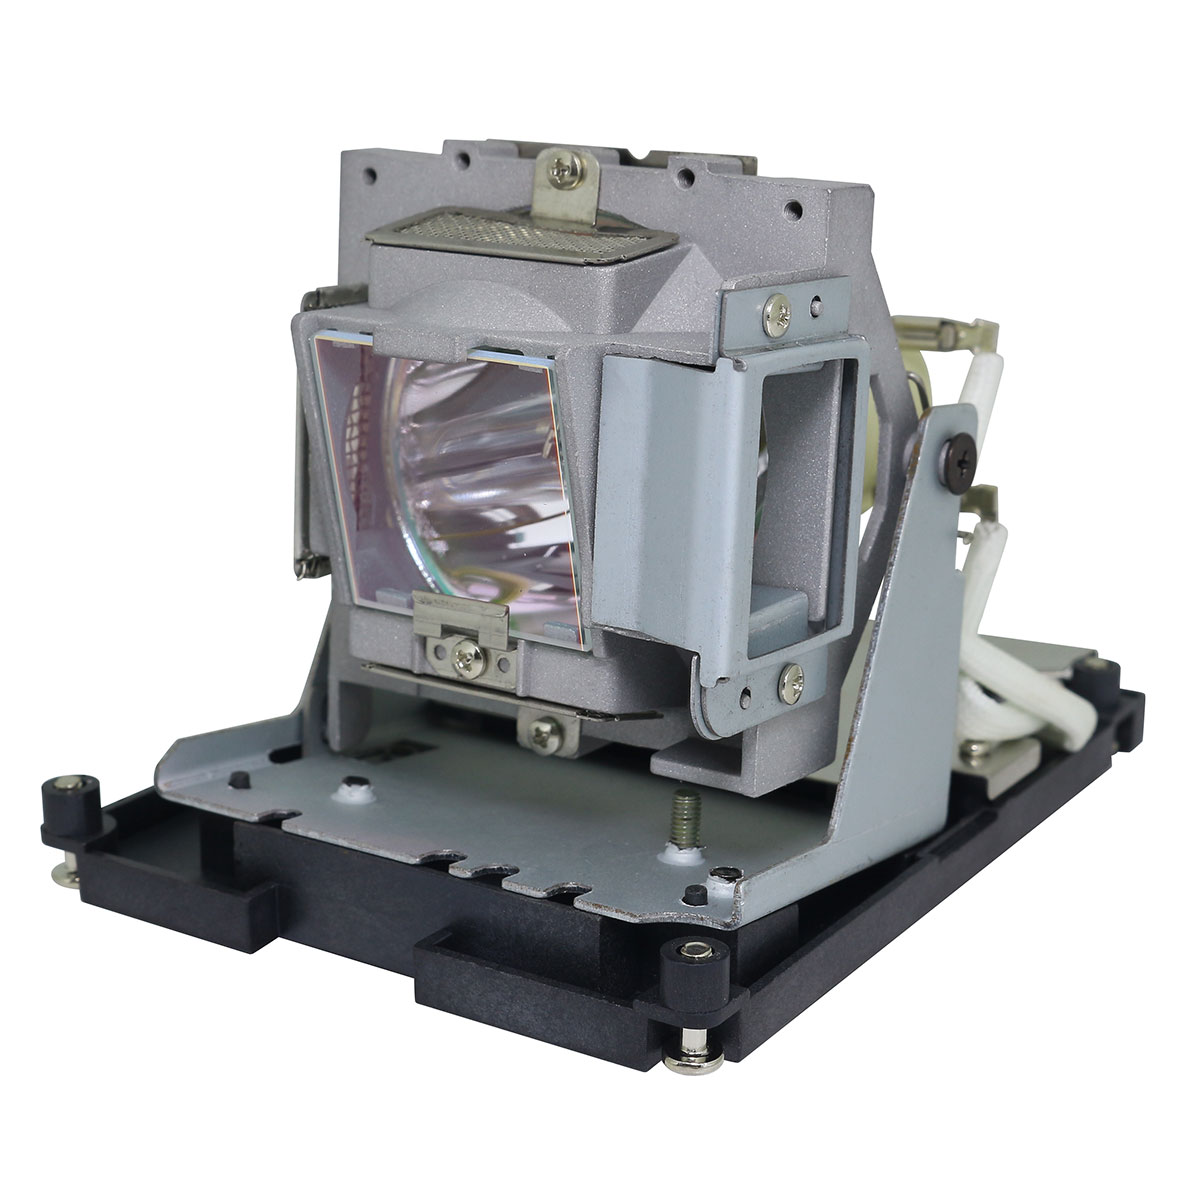 Original Philips Projector Lamp Replacement with Housing for BenQ MP735 - image 5 de 5